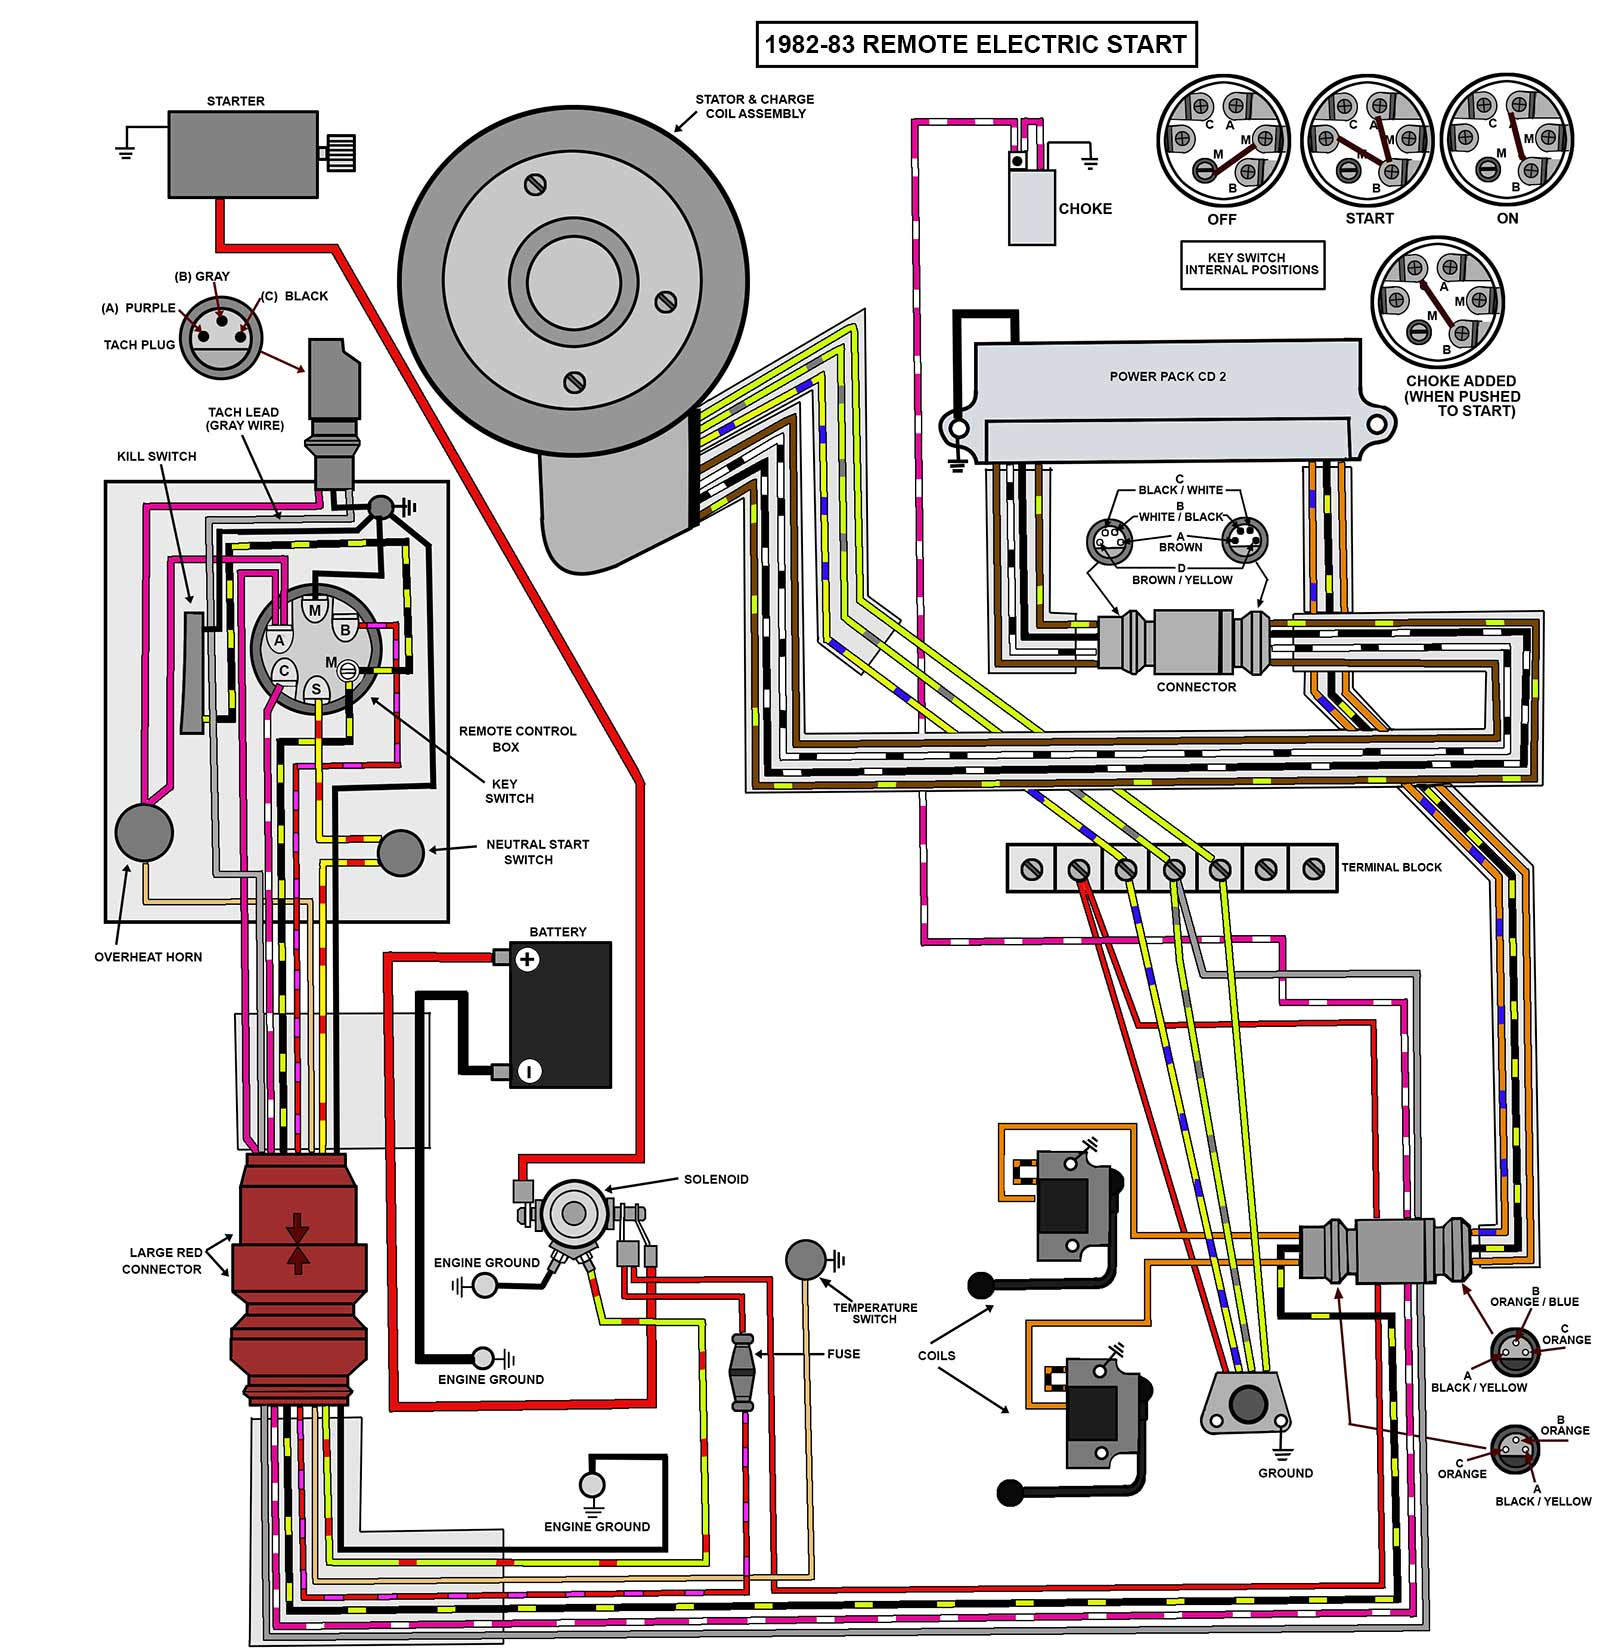 Yamaha 60 Outboard Wiring Diagram Pdf | Wiring Diagram on yamaha schematics, yamaha motor diagram, suzuki quadrunner 160 parts diagram, yamaha ignition diagram, yamaha steering diagram, yamaha wiring code, yamaha solenoid diagram,